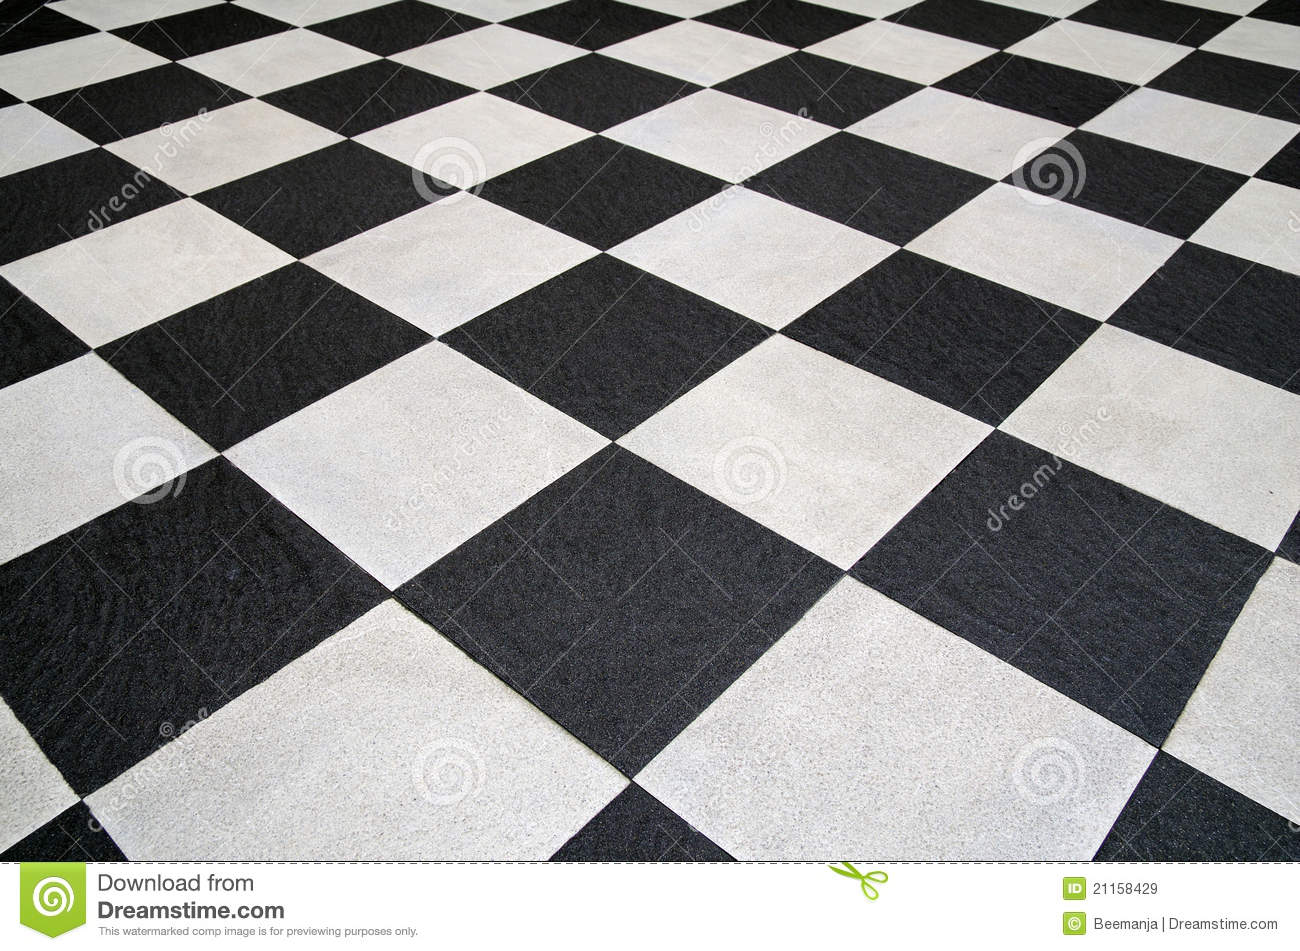 Square black and white tiles floor stock image image for Black and white tile floors